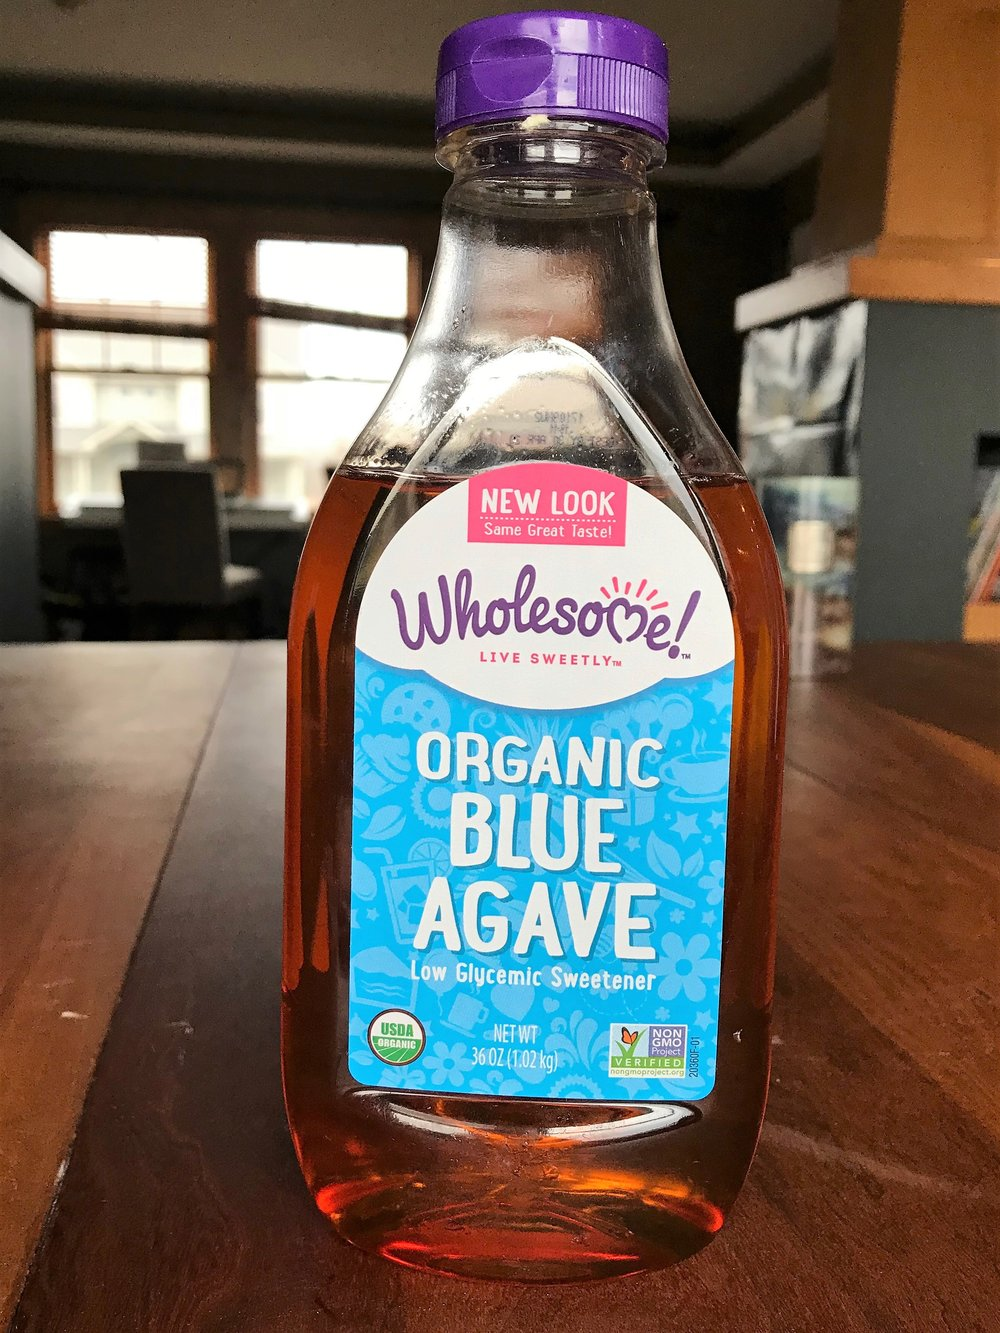 Blue agave - is an alternative to corn syrup with a lower glycemic index...however, local honey and maple syrup are even better options.